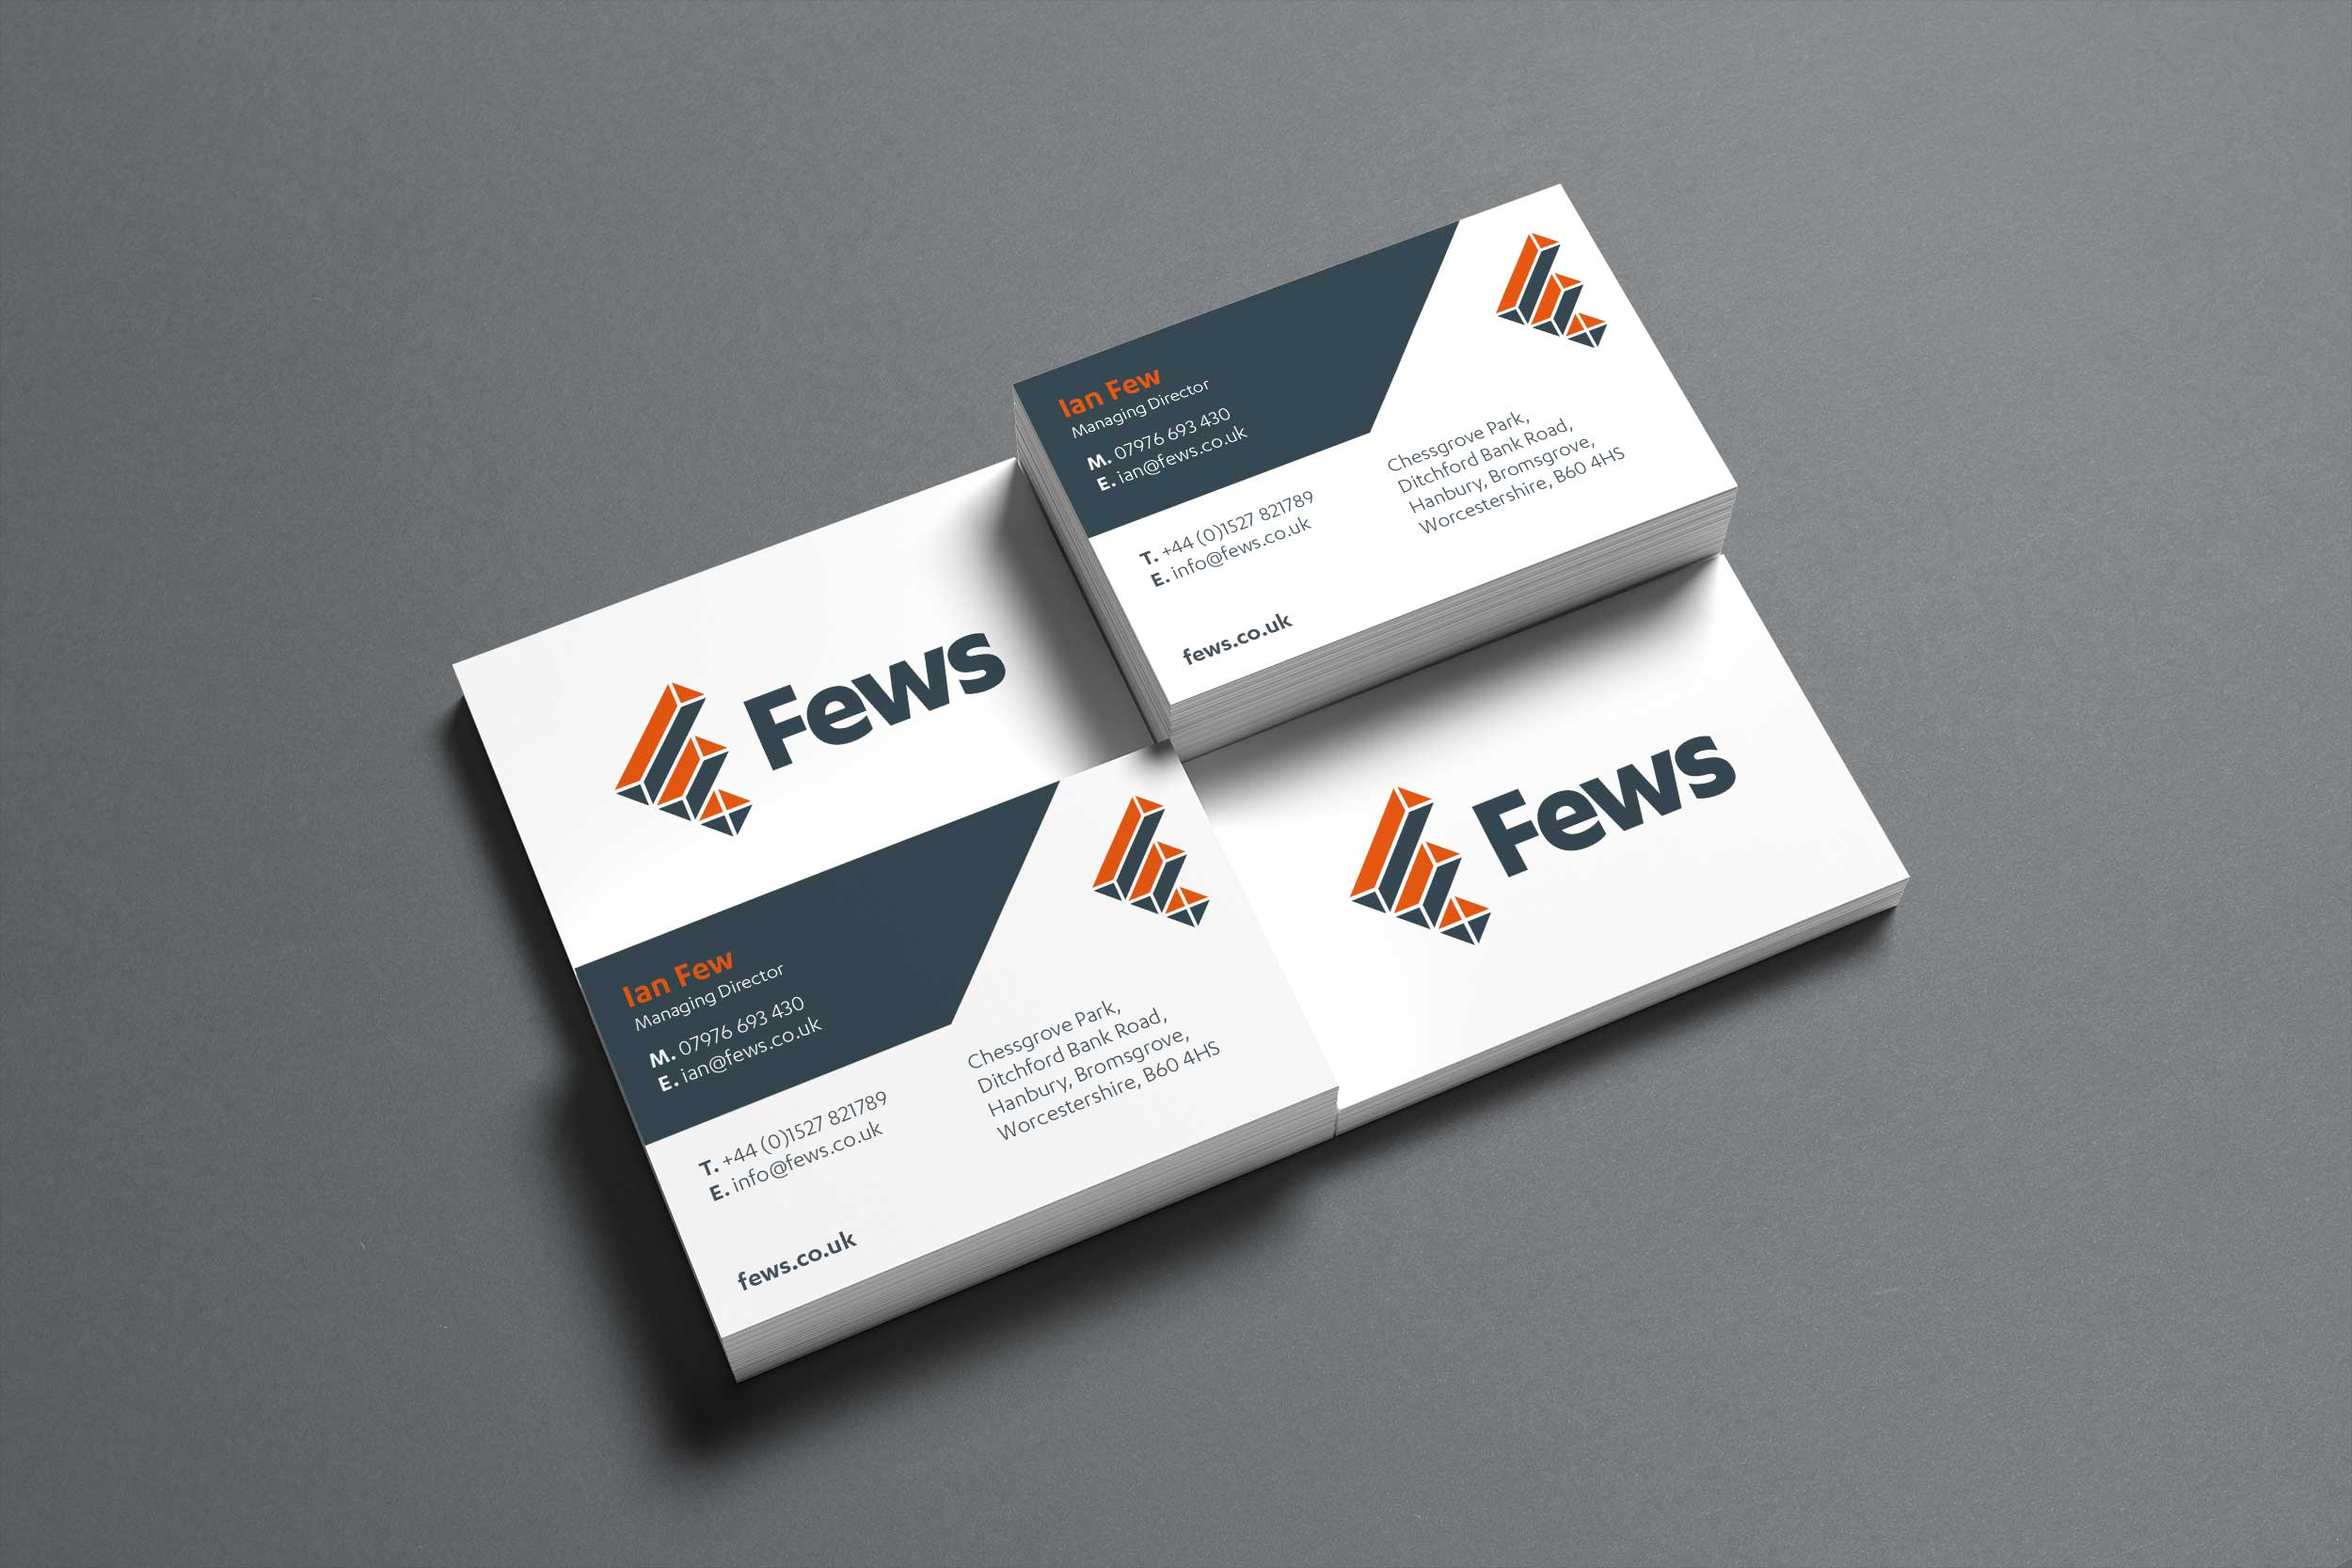 Fews business cards